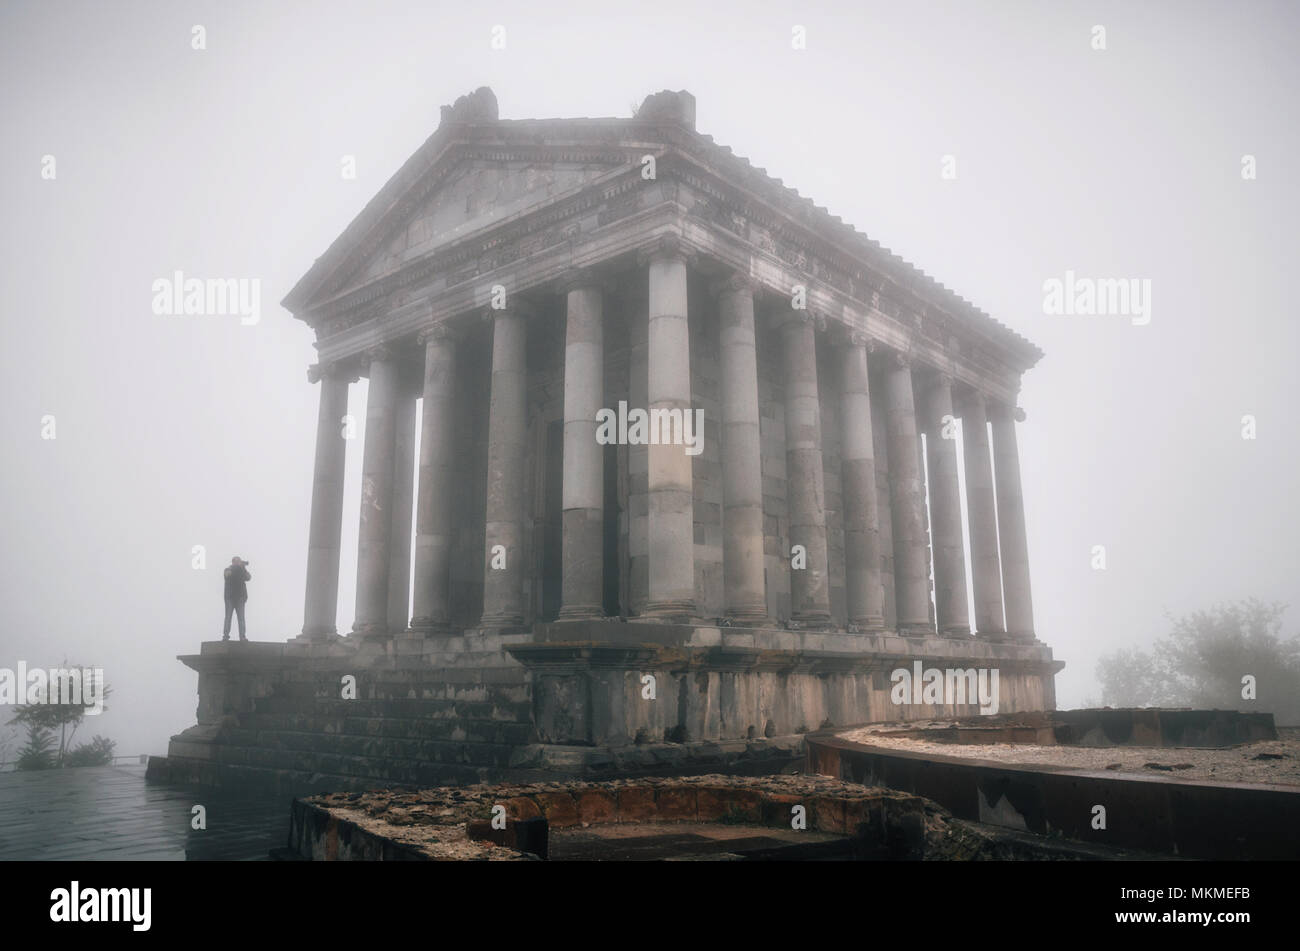 Garni hellenistic pagan Temple with silhouette of tourist taking photo in fog, Republic of Armenia - Stock Image